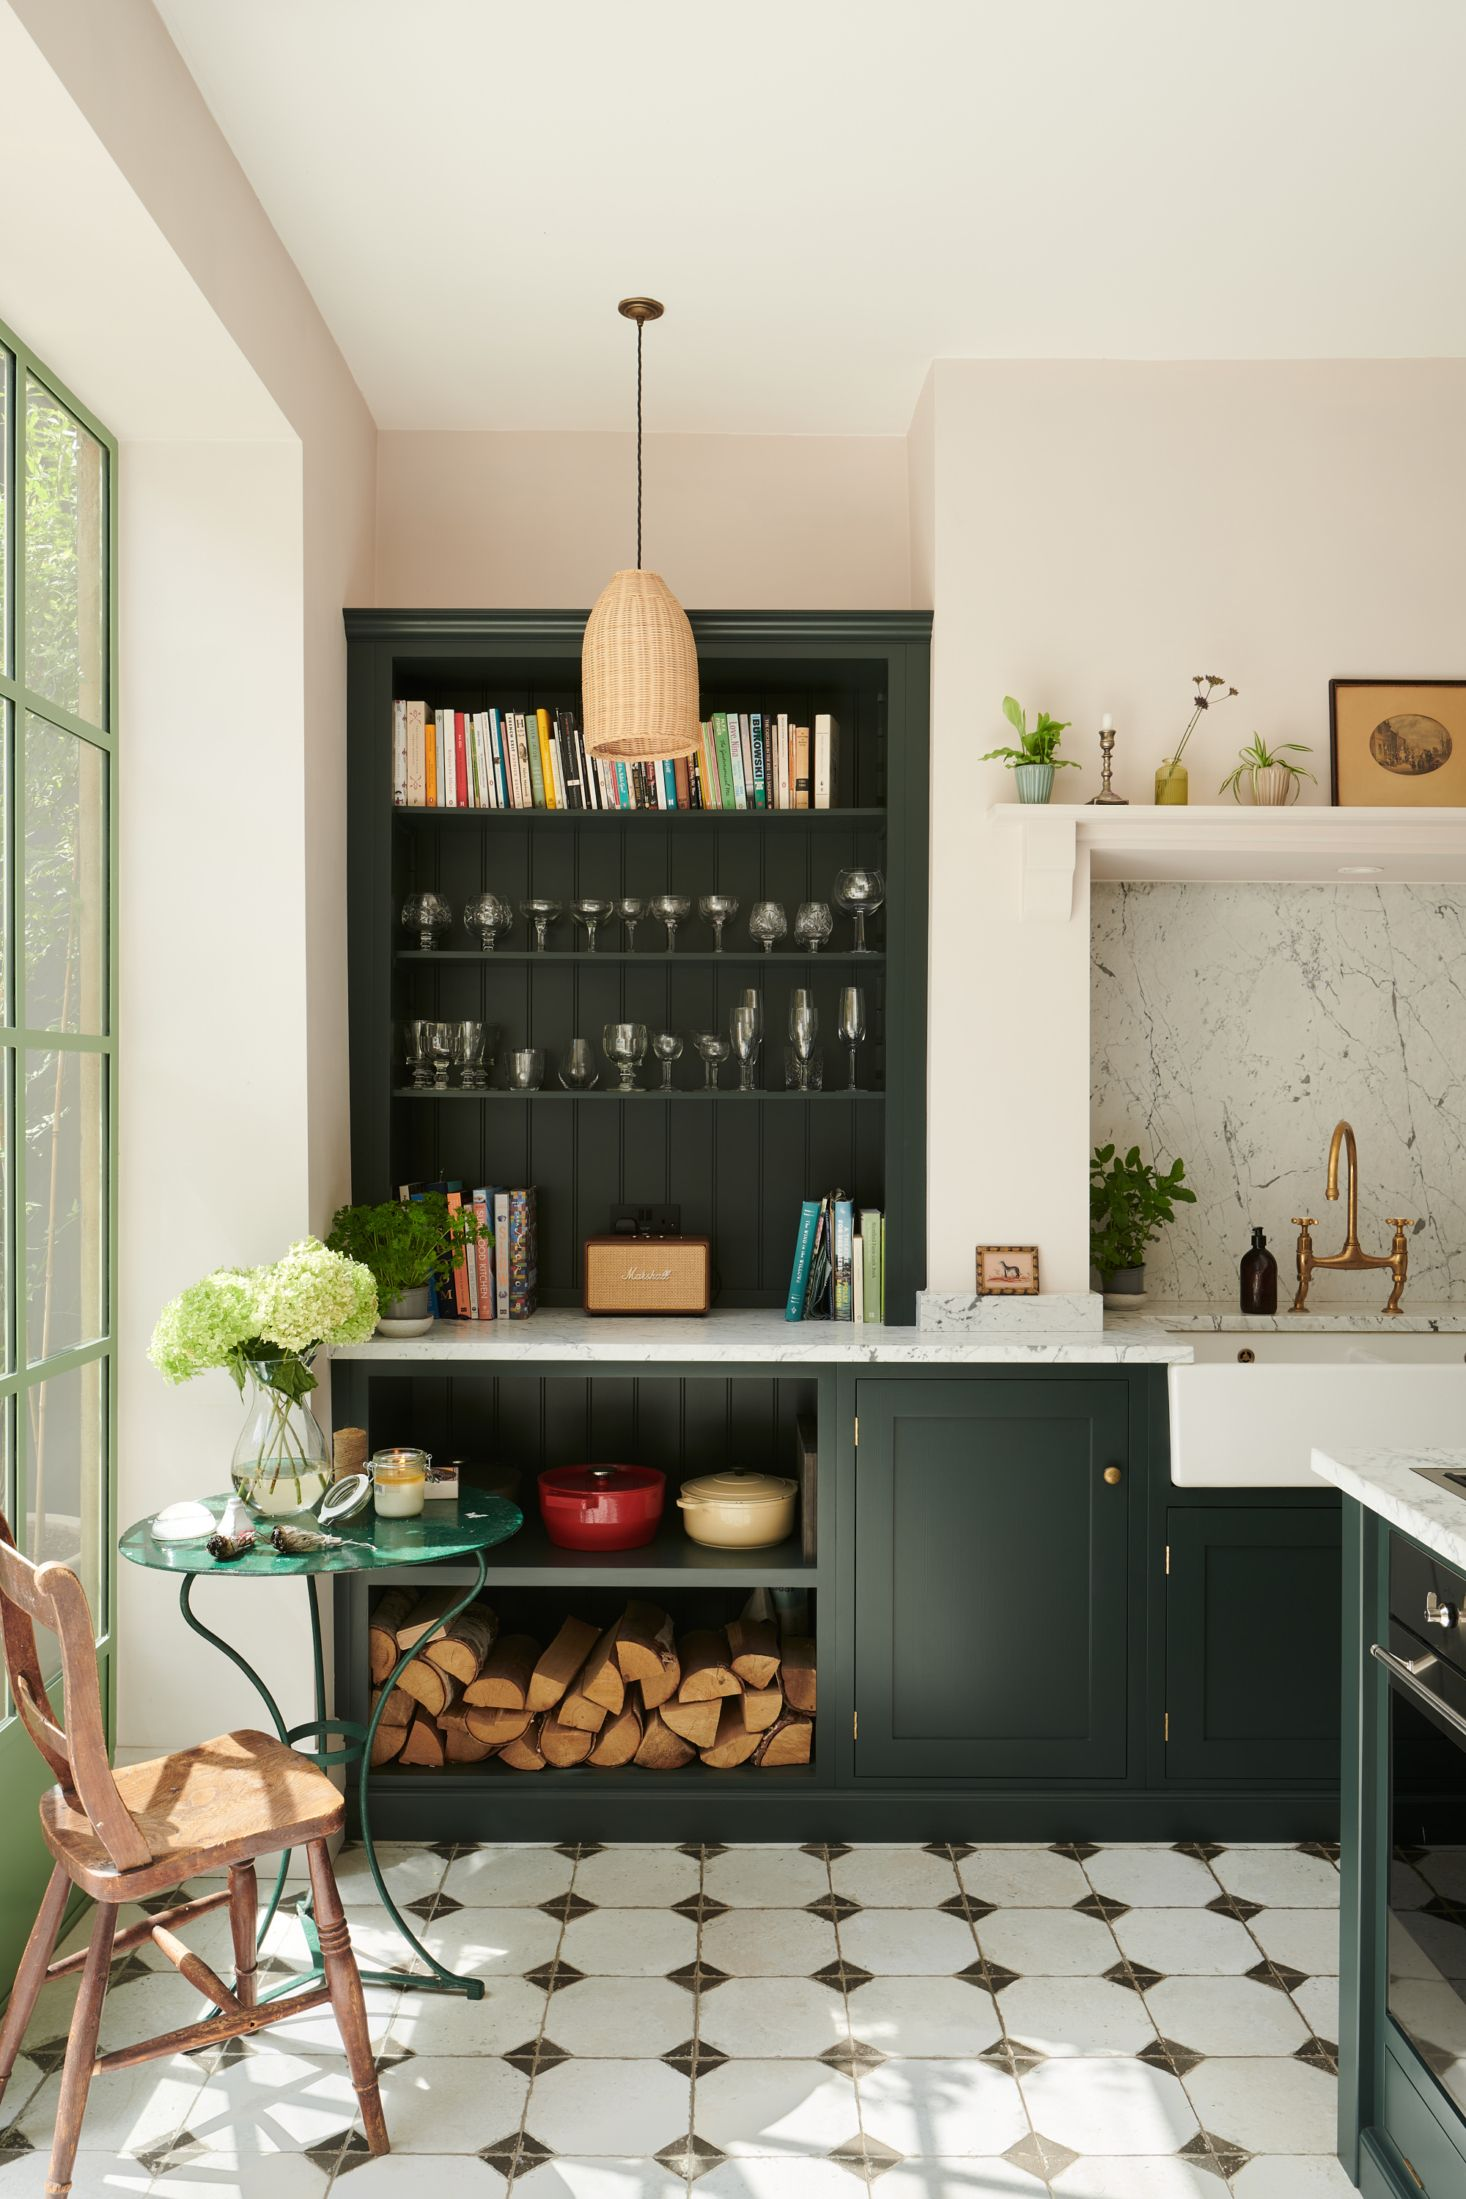 Kitchen of the Week 'Wes Anderson Meets Provencal' in West London ...